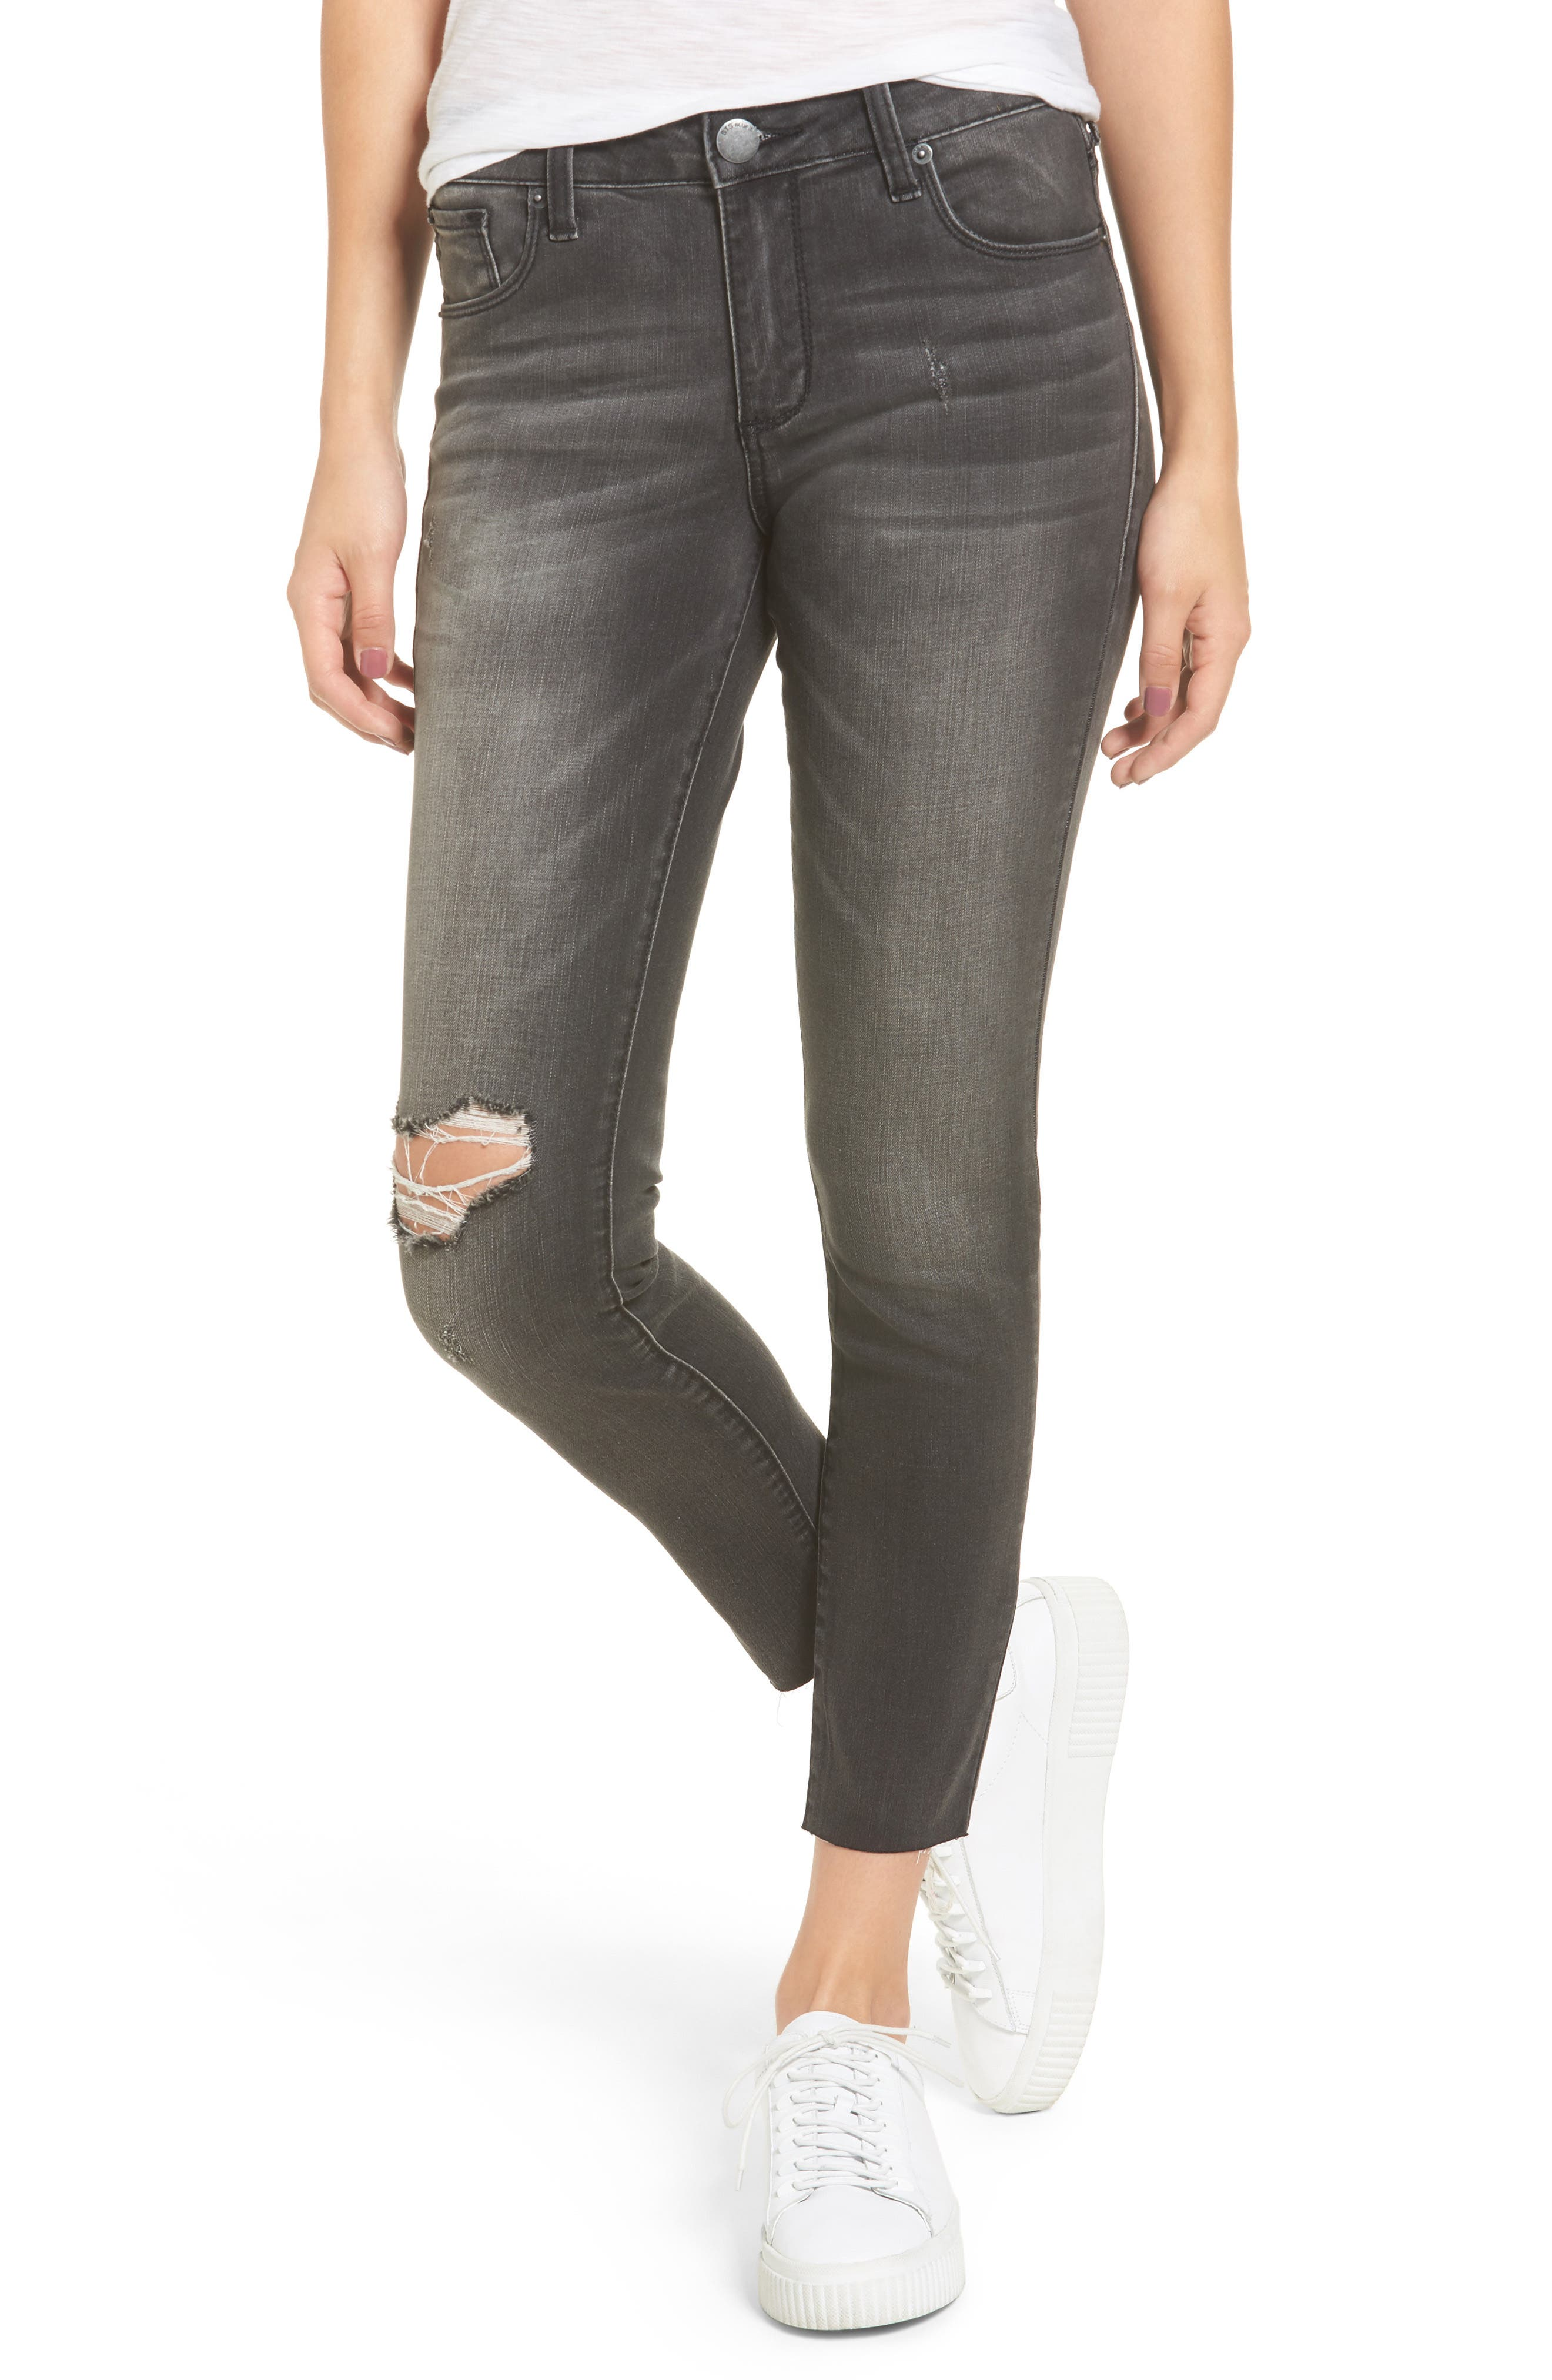 STS Emma Ripped Crop Skinny Jeans,                             Main thumbnail 1, color,                             001